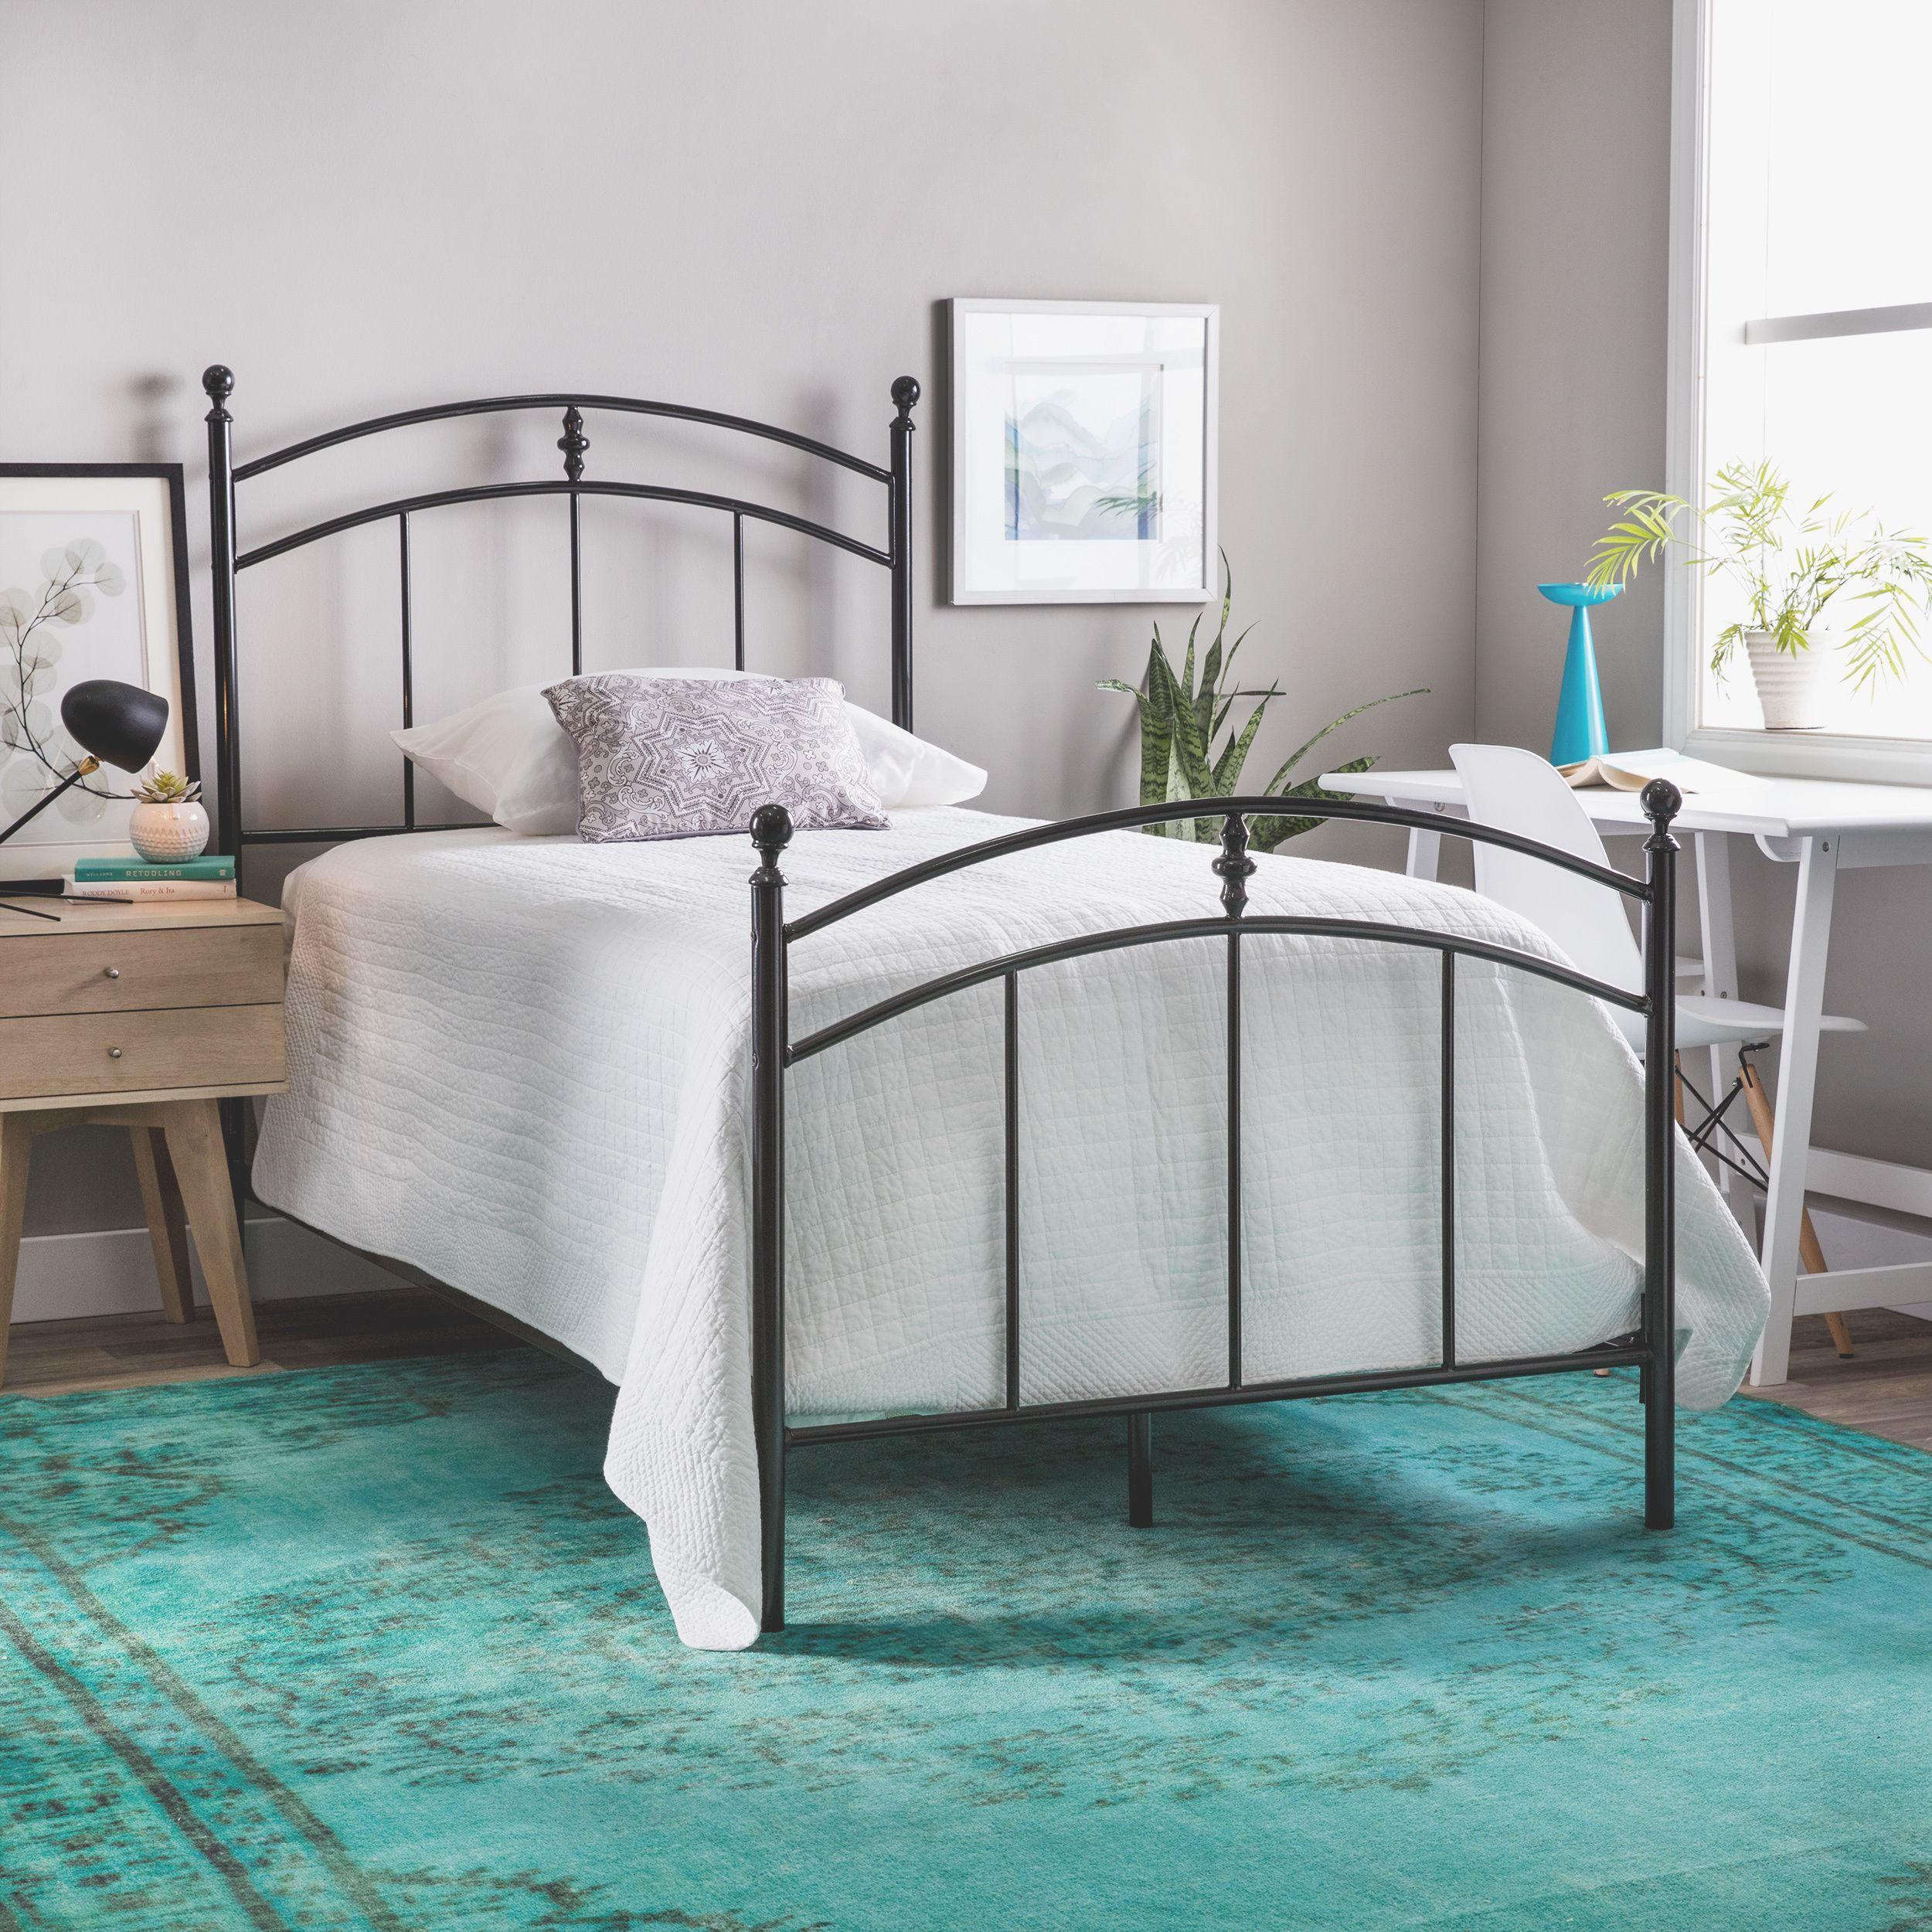 This Pogo twin-size metal bed frame makes for a stylish update to ...